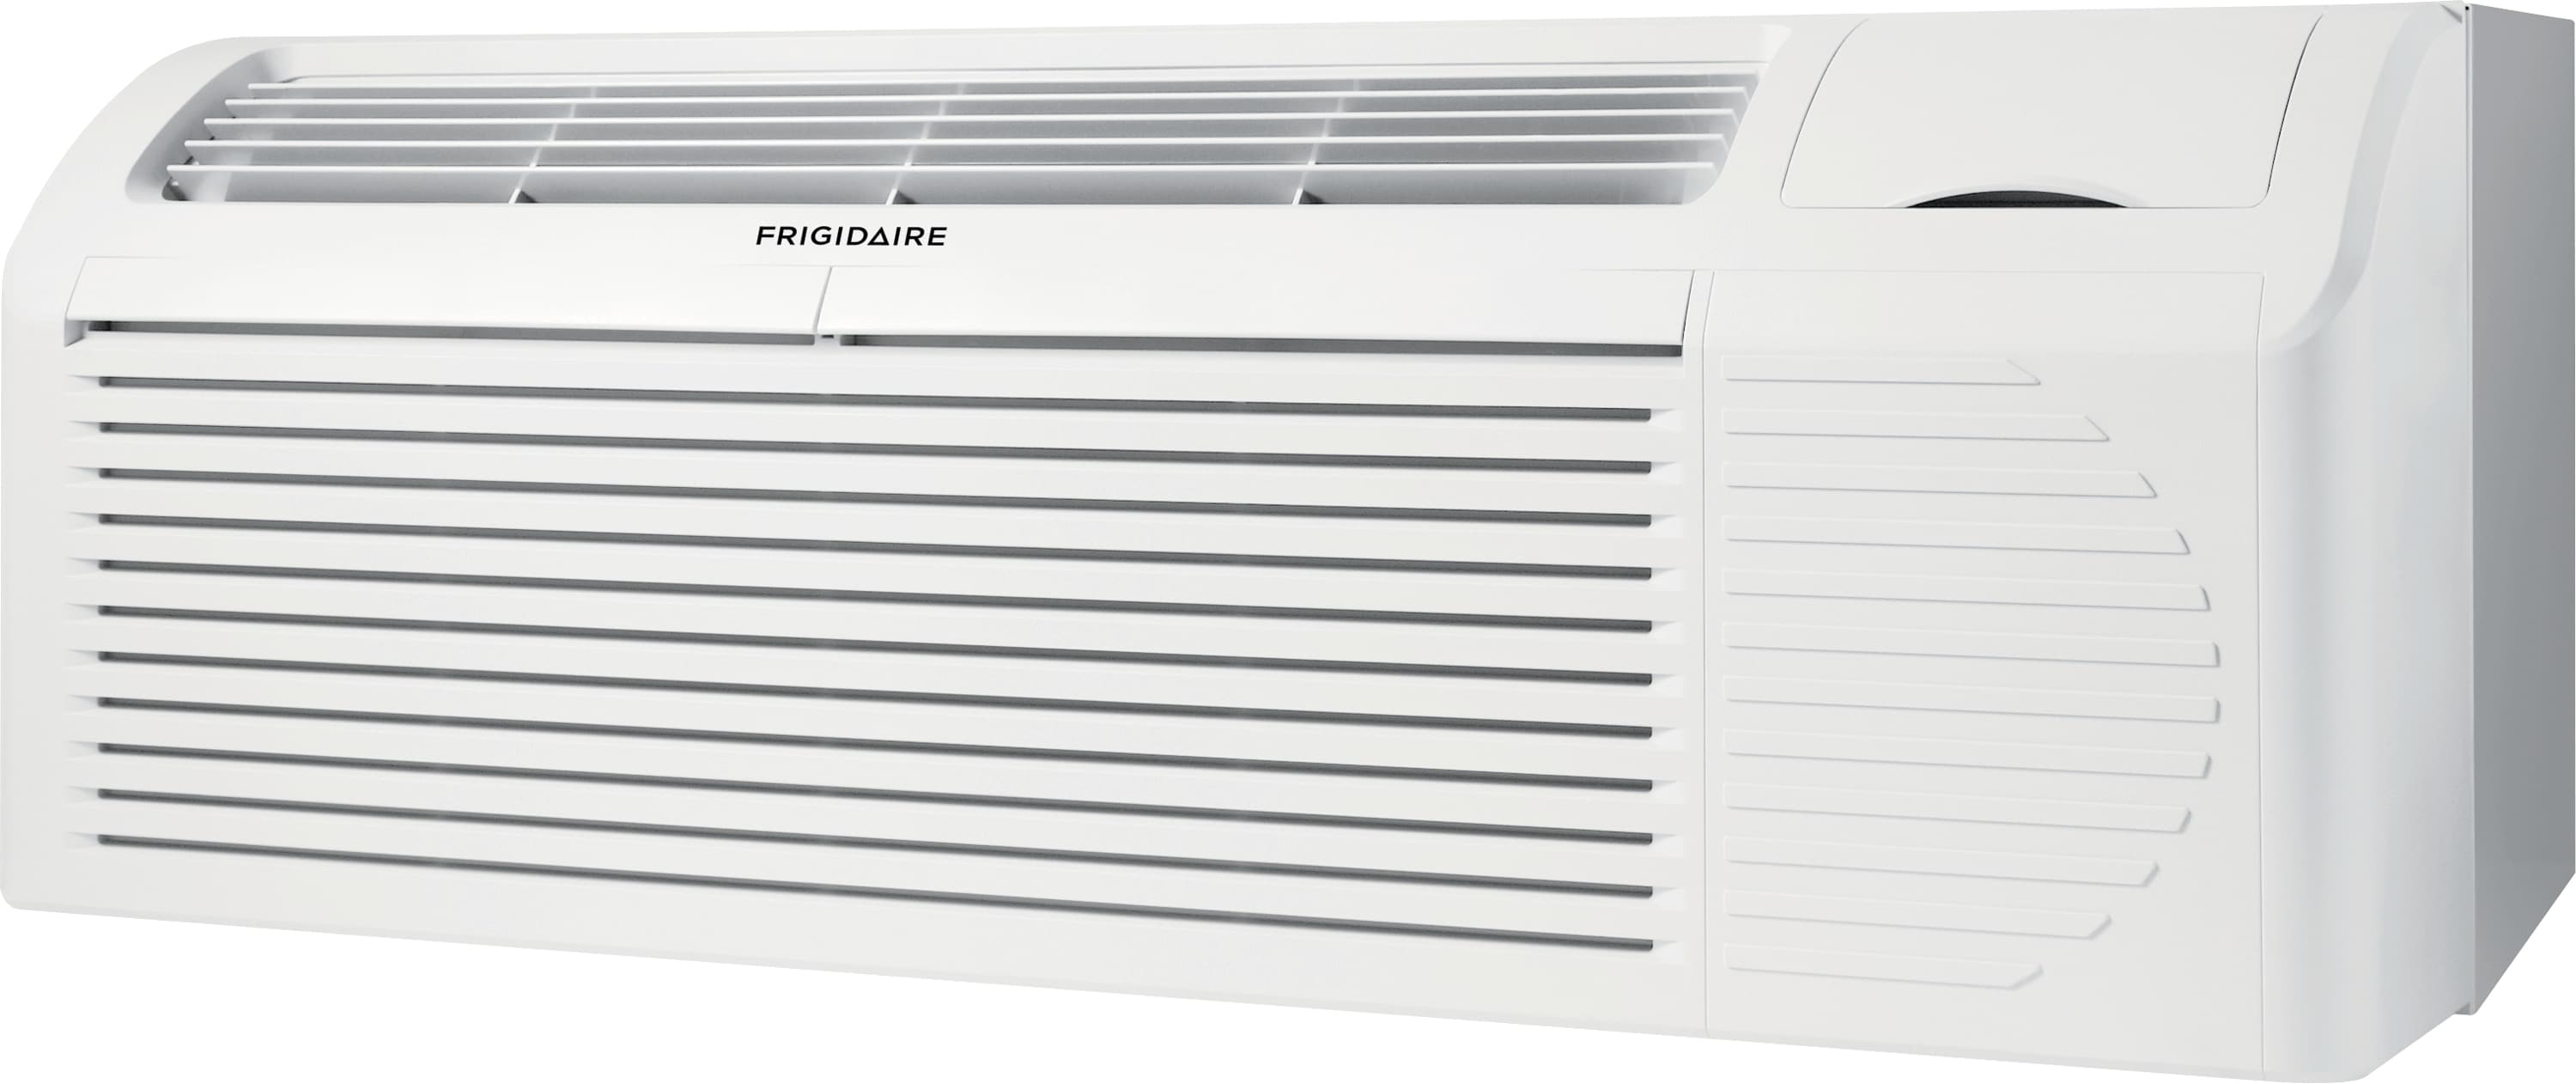 PTAC unit with Electric Heat 7,000 BTU 265V with Corrosion Guard and Dry Mode